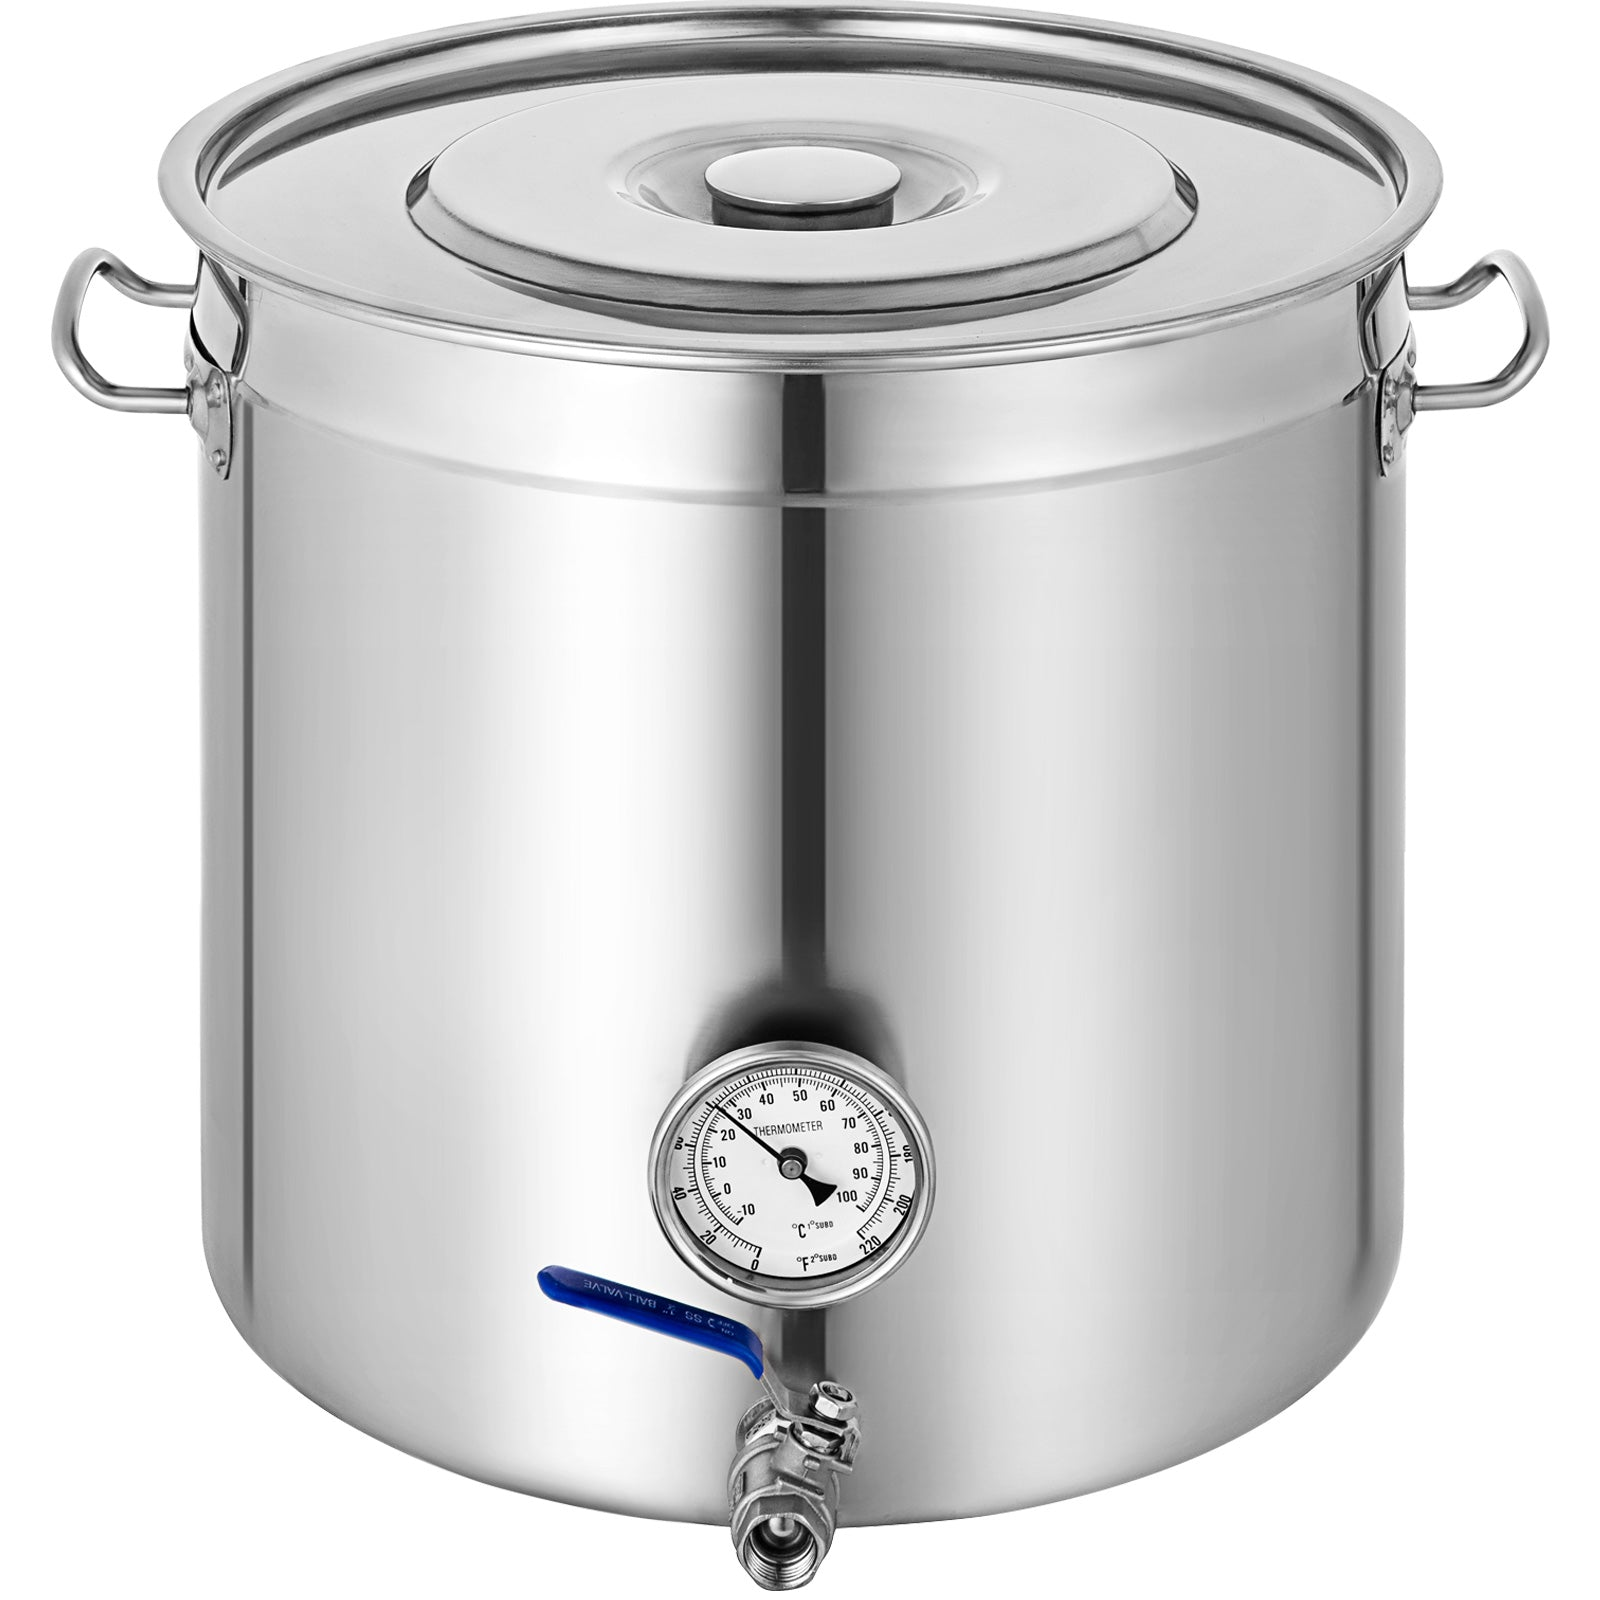 137.5qt Stainless Steel Stock Pot Steamer Vevor 130l Thermometer